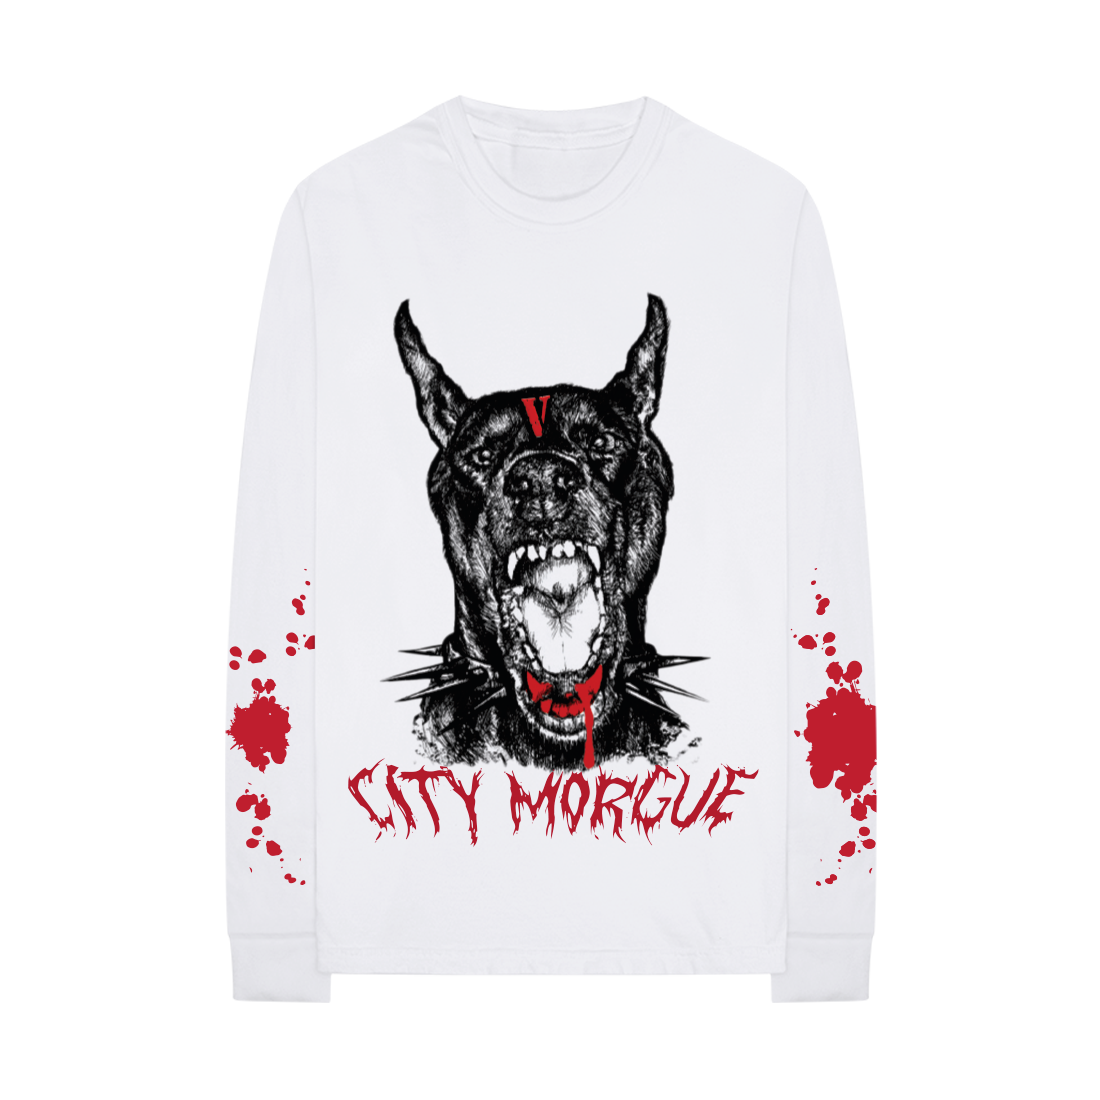 VLONE X CITY MORGUE BARK LONGSLEEVE II + DIGITAL ALBUM